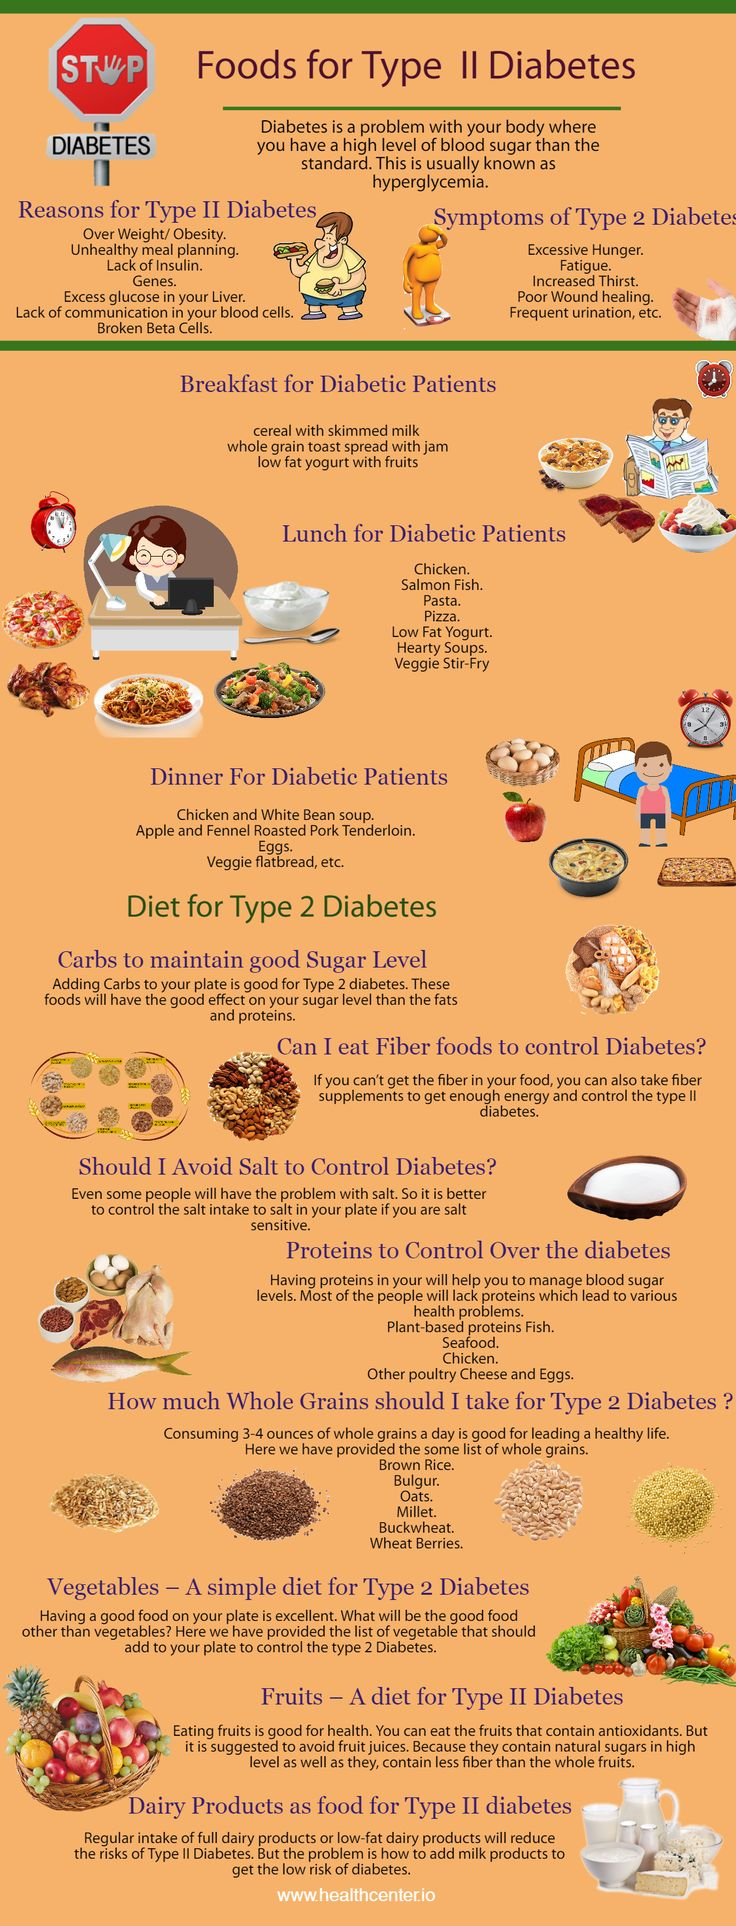 Diabetes Diet: Regulate your blood sugar levels with these foods!